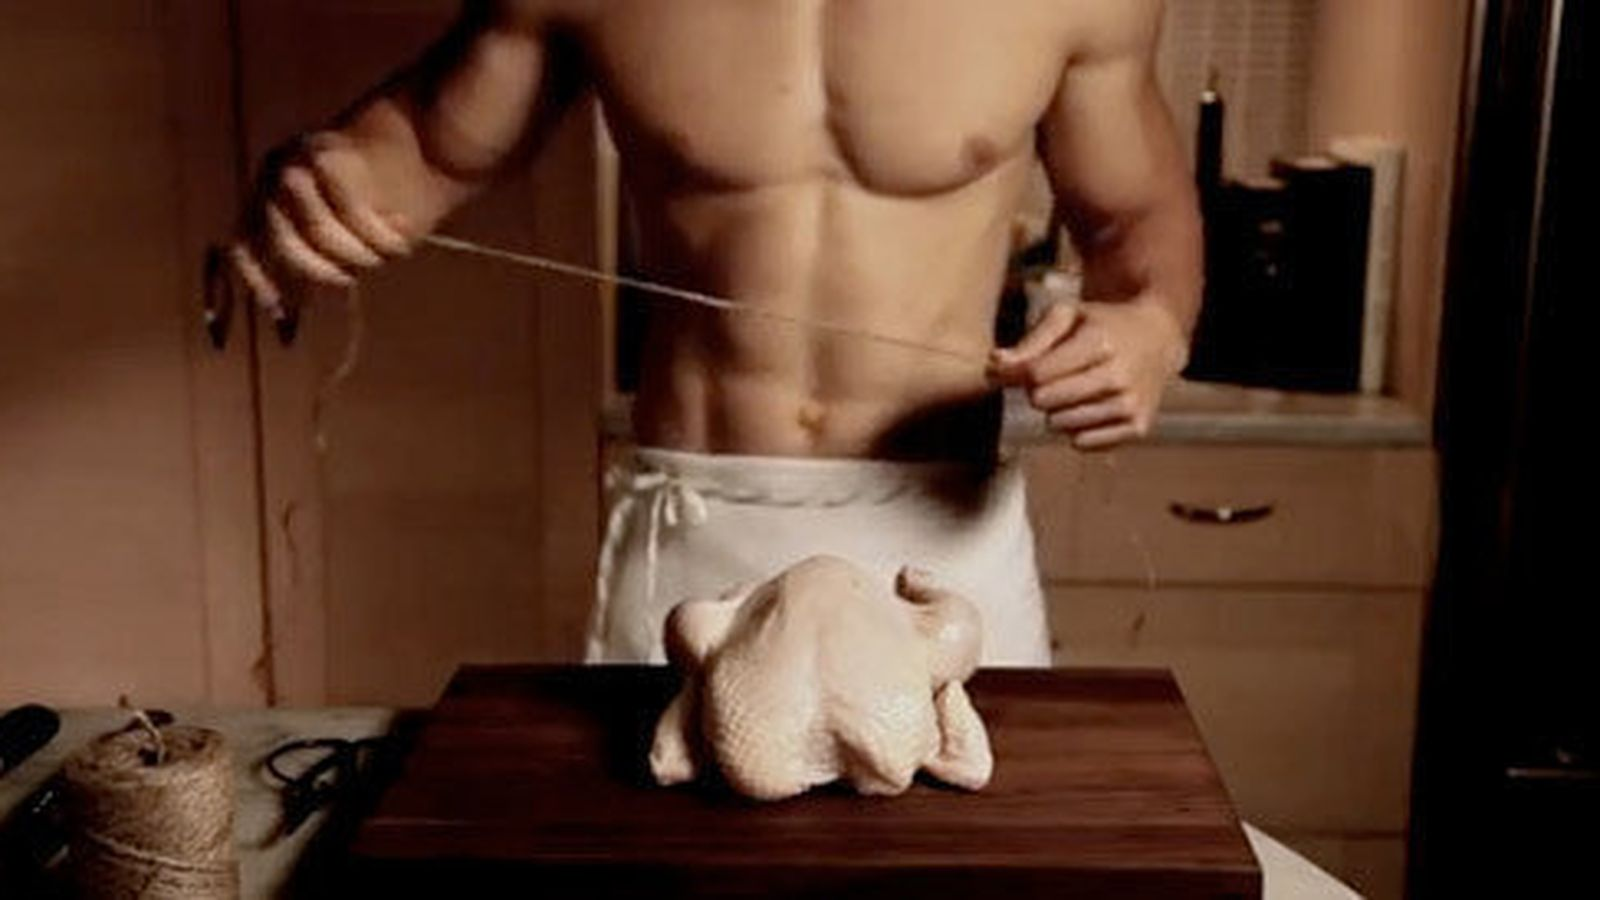 Shirtless, heavily-muscled man prepares to bind a chicken's corpse on a cutting board